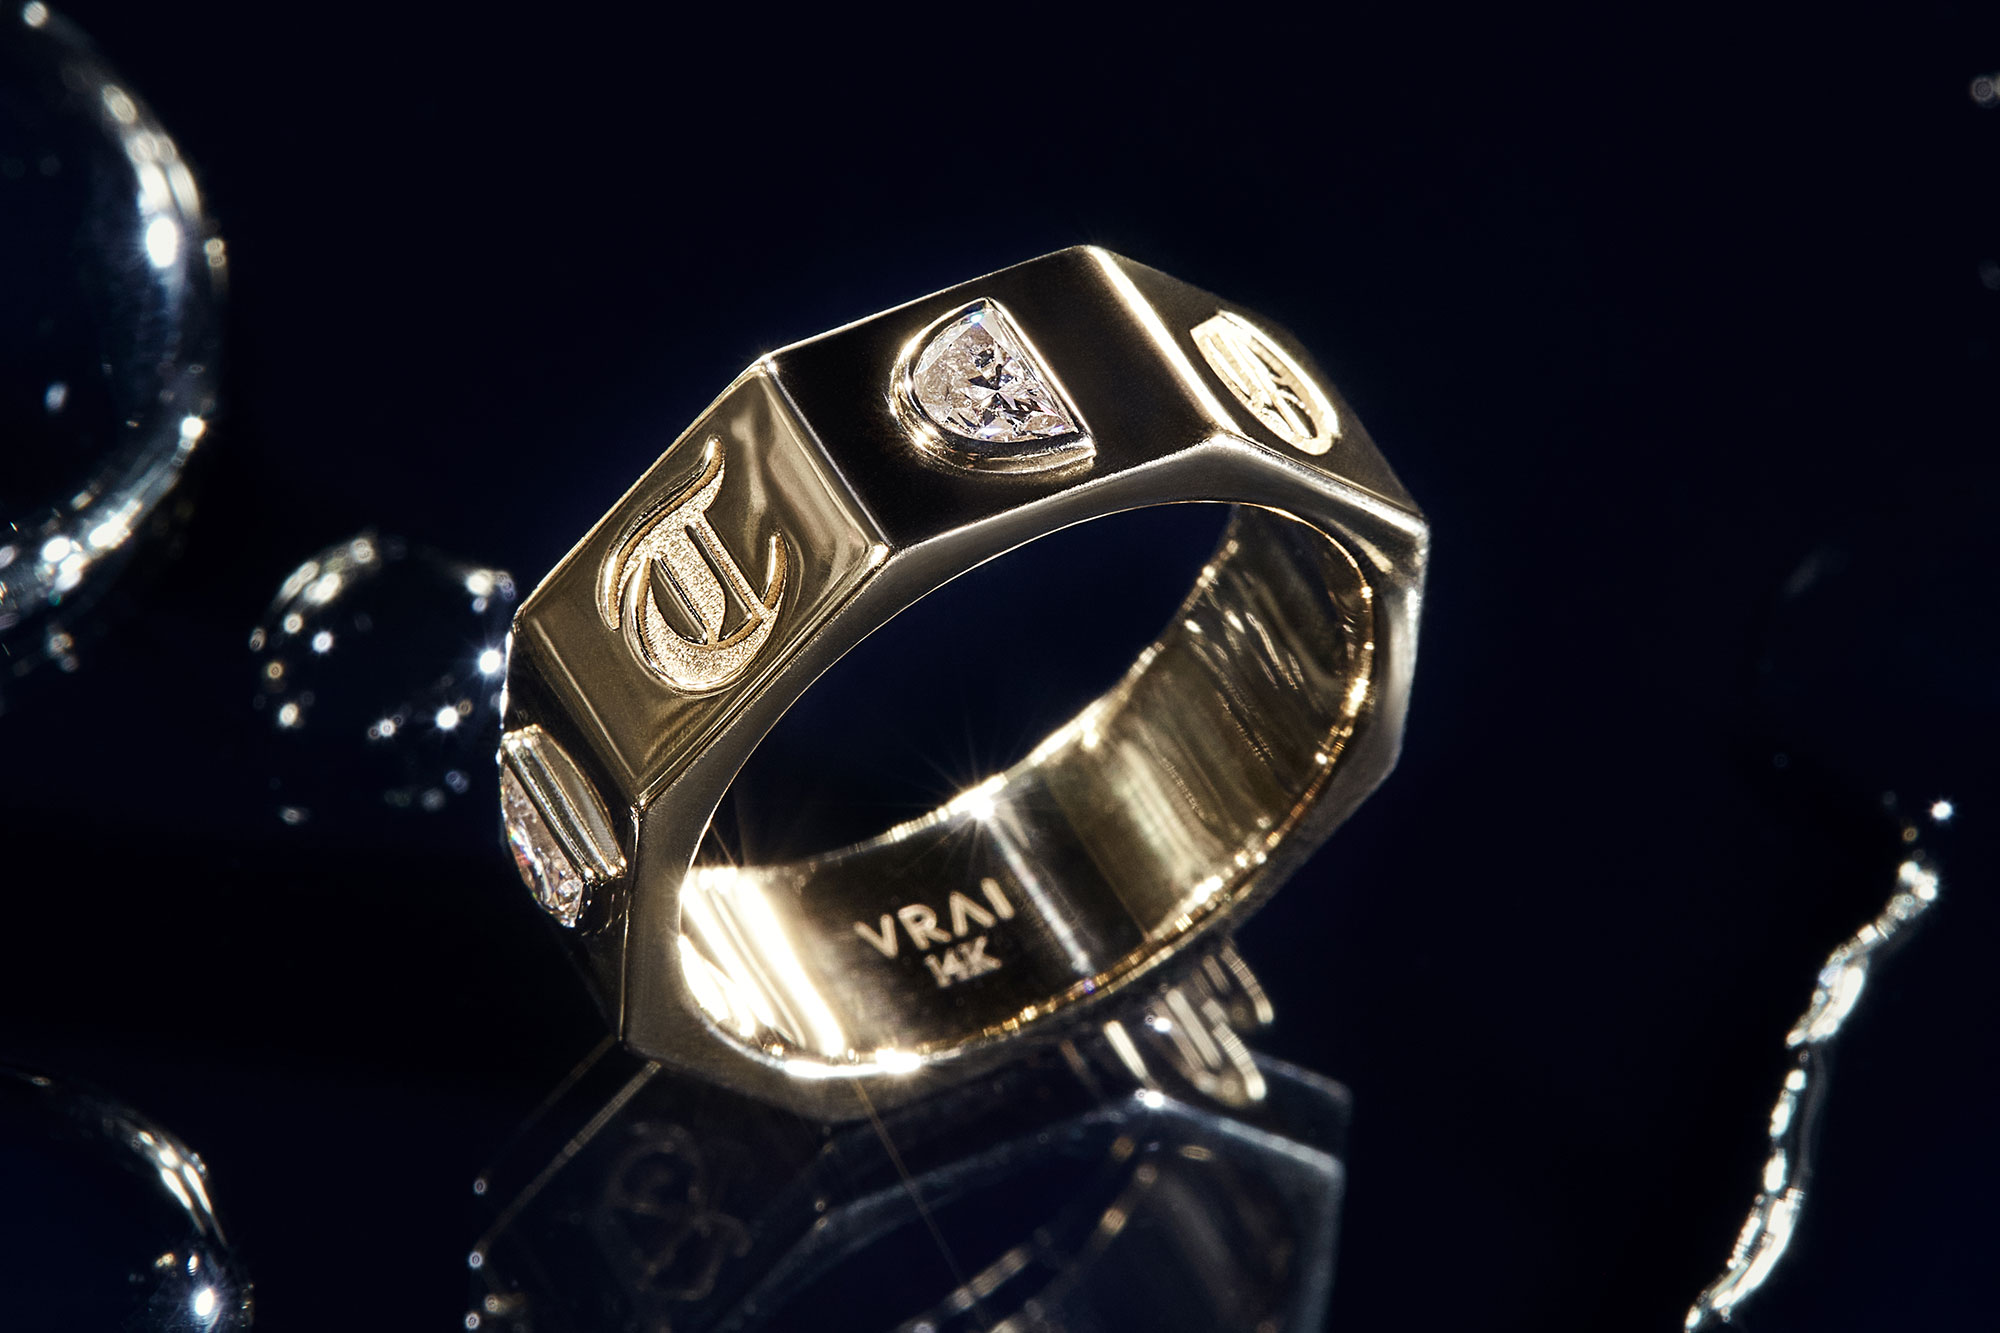 RandM Yellow Gold contract ring with lab-grown diamonds